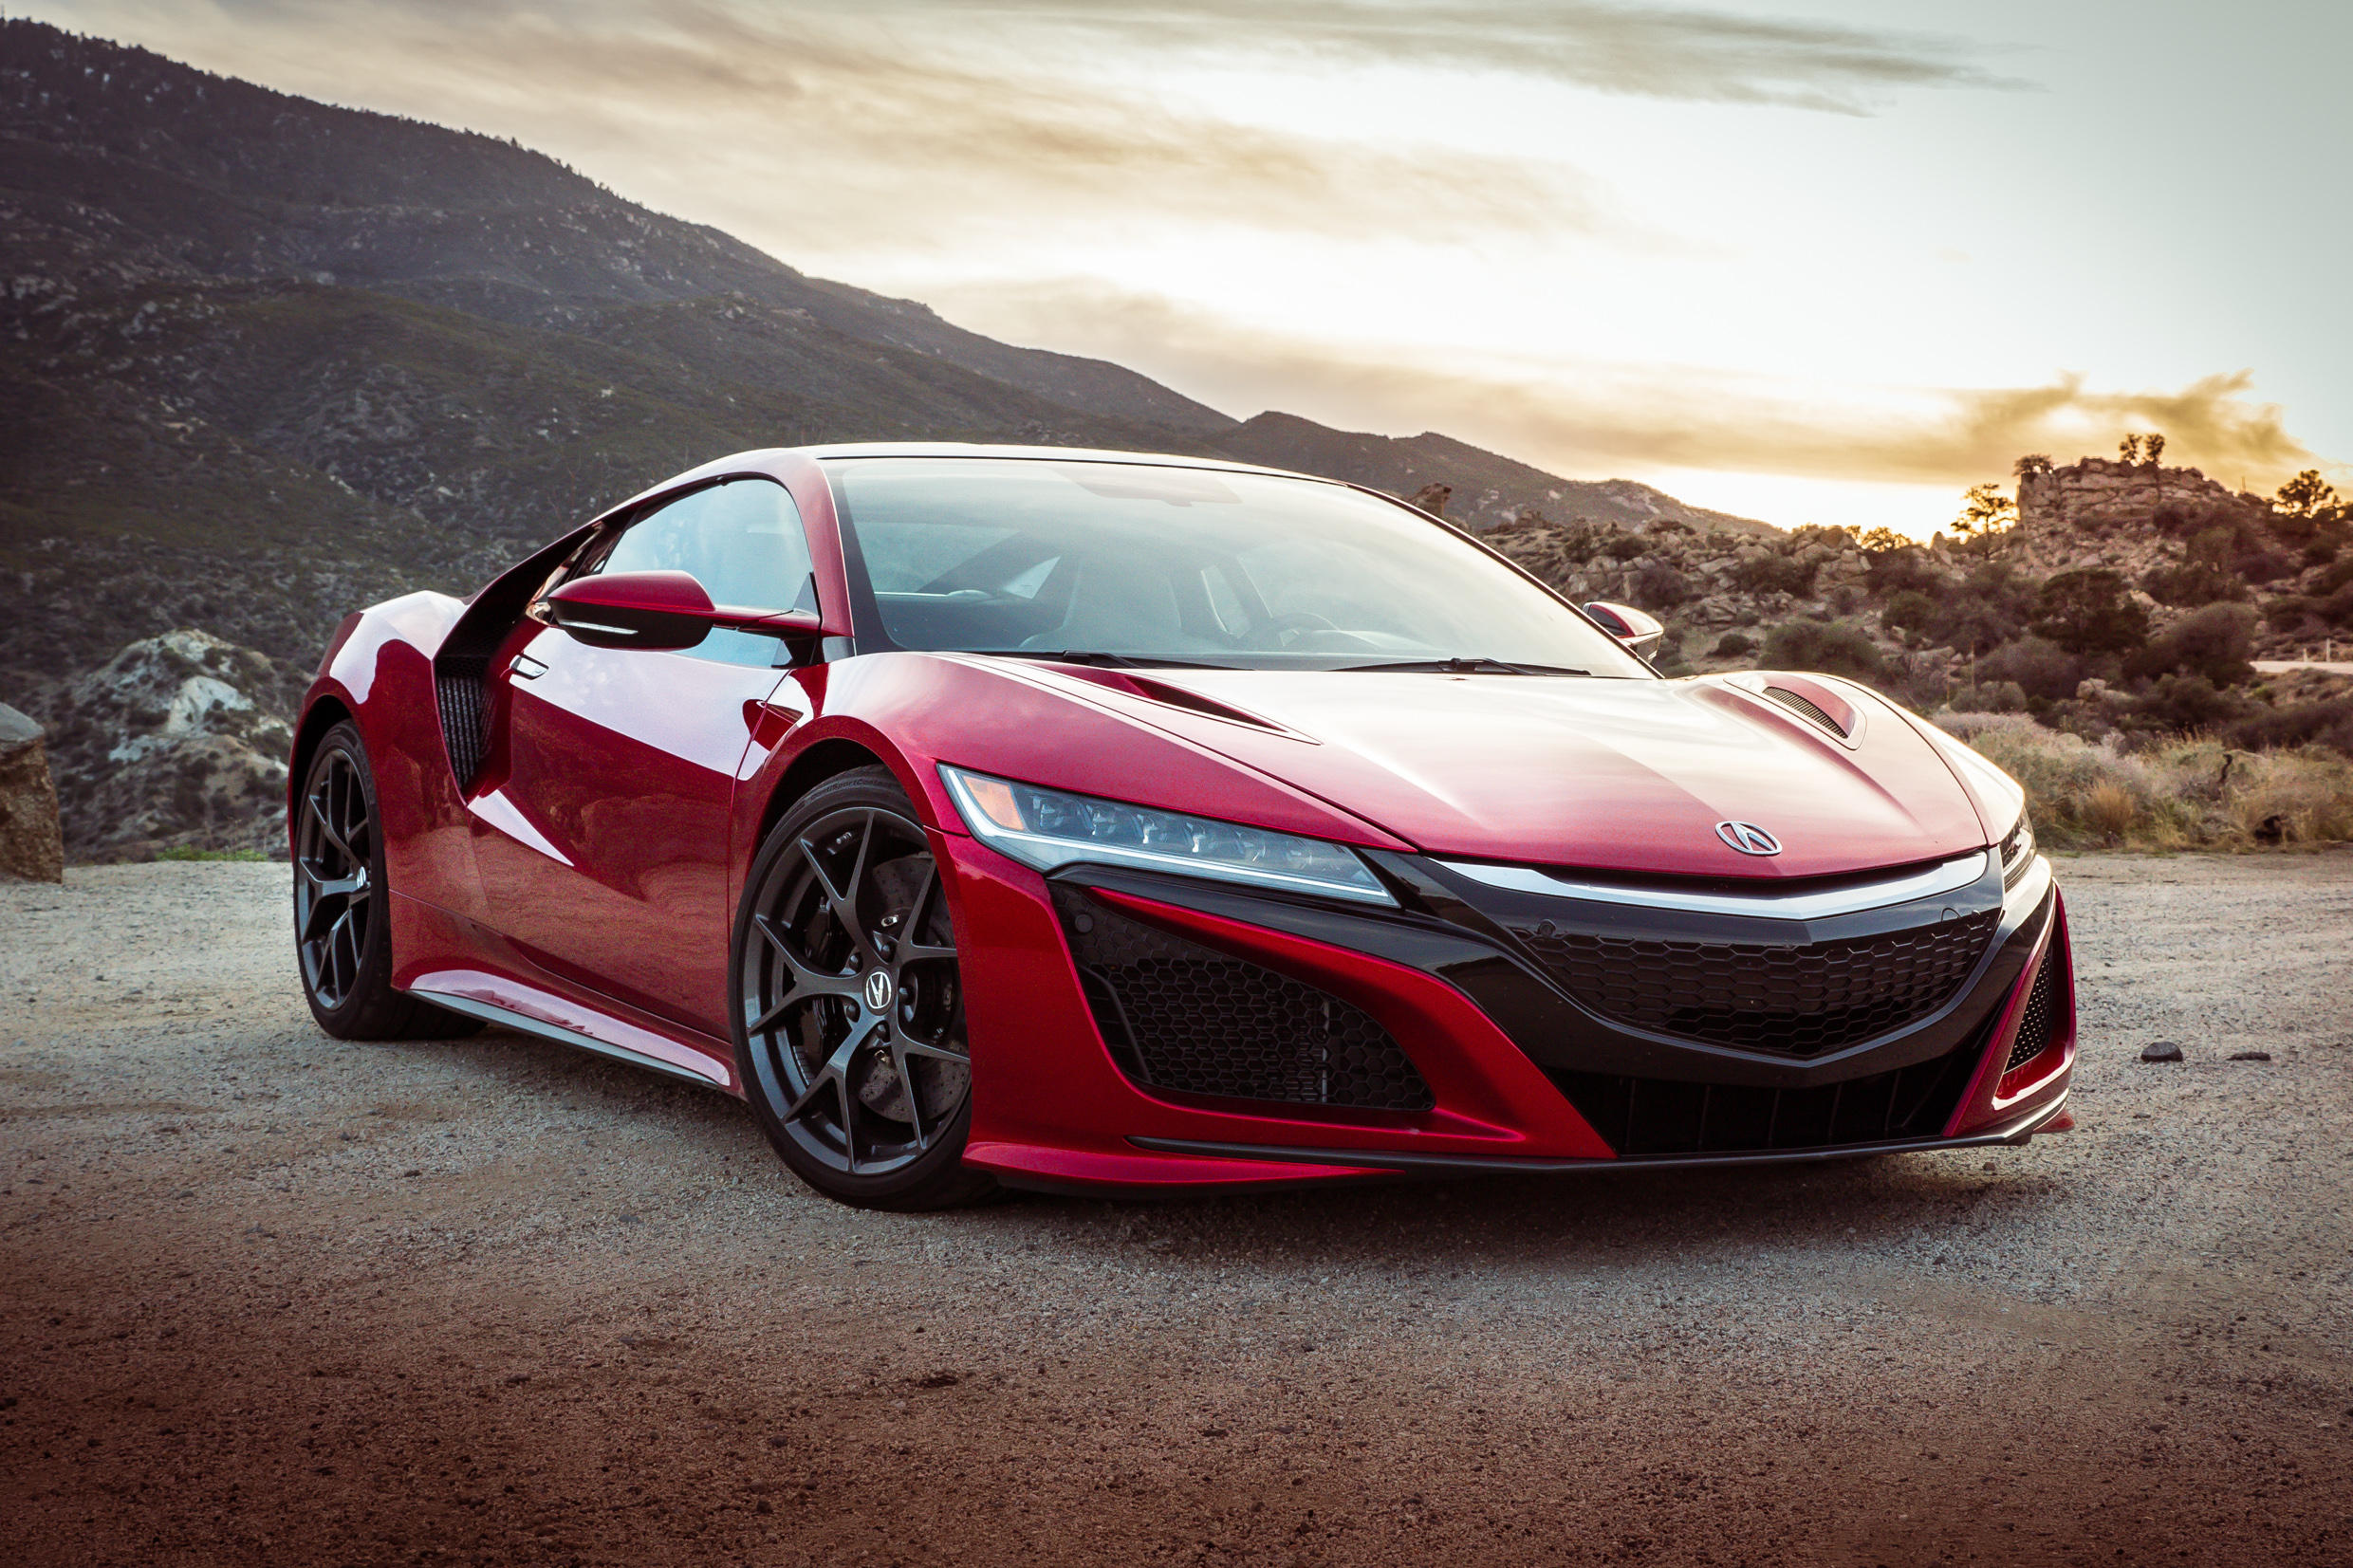 Honda NSX Wallpapers and Background Images   stmednet 2480x1653